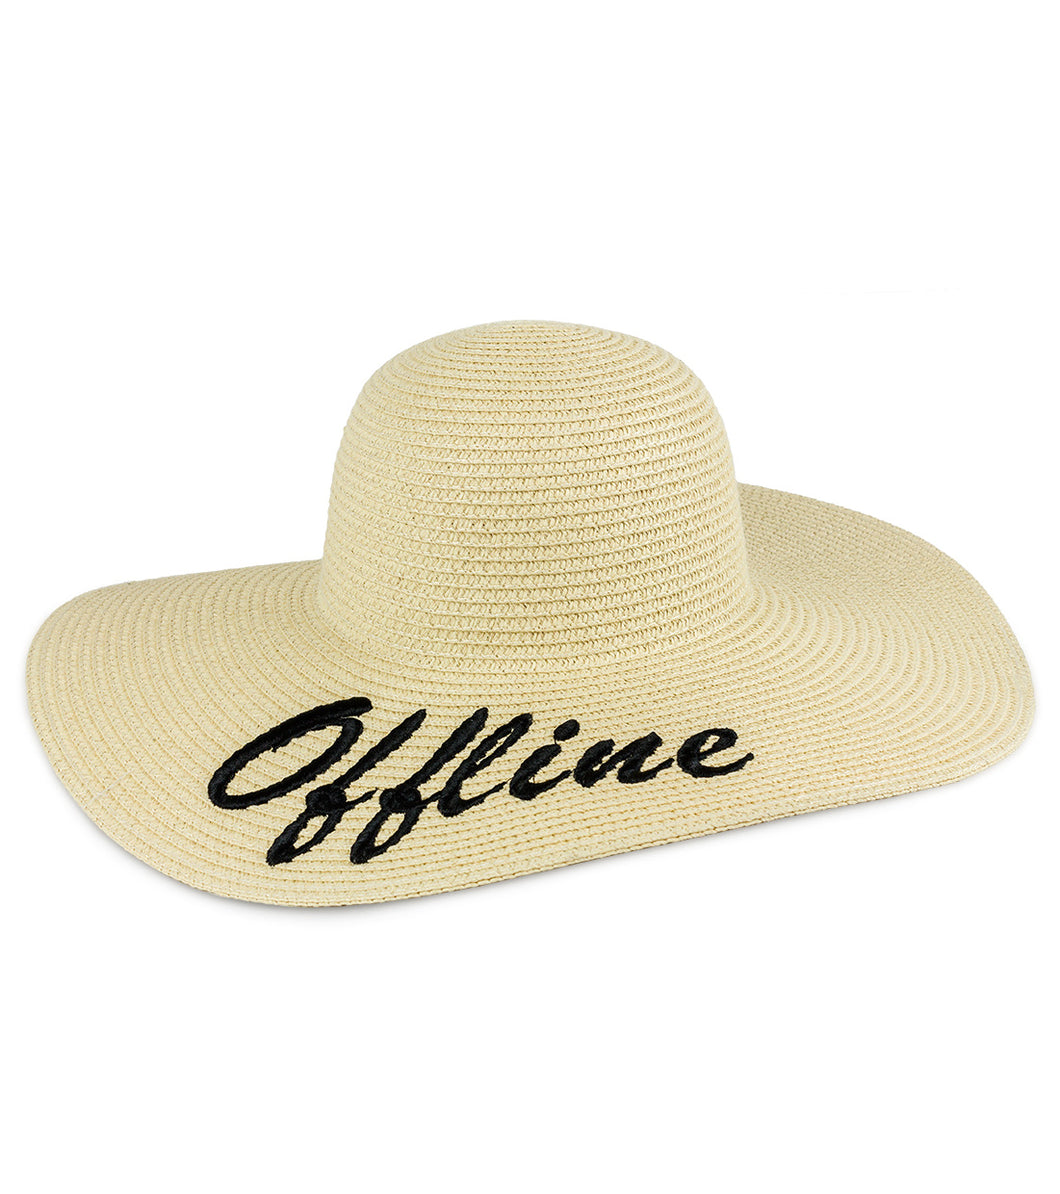 Offline Straw Floppy Sun Hat - Just Jamie